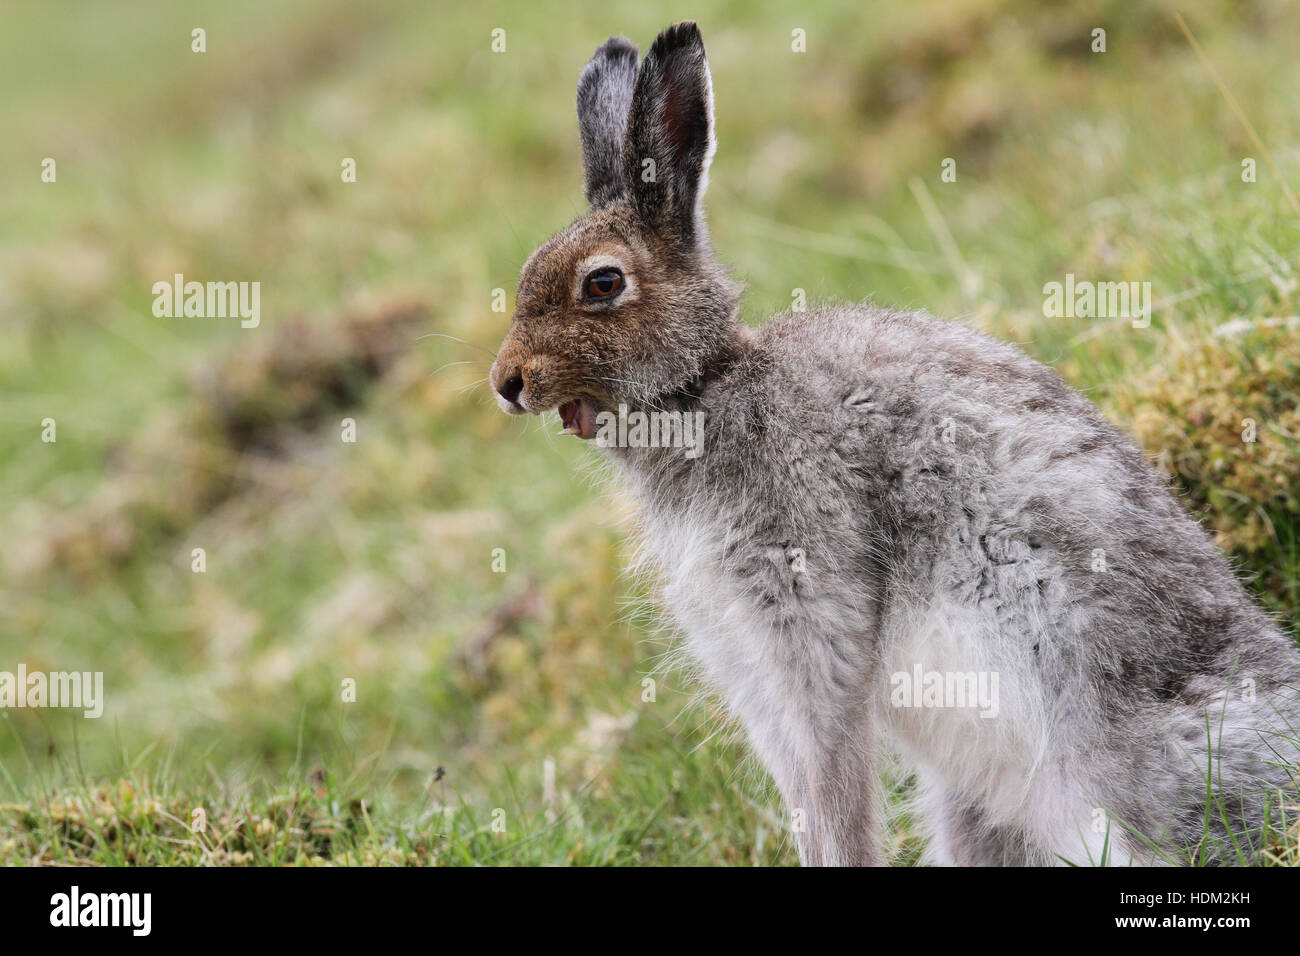 Mountain Hare (Lepus timidus) in the highlands of Scotland yawning. - Stock Image